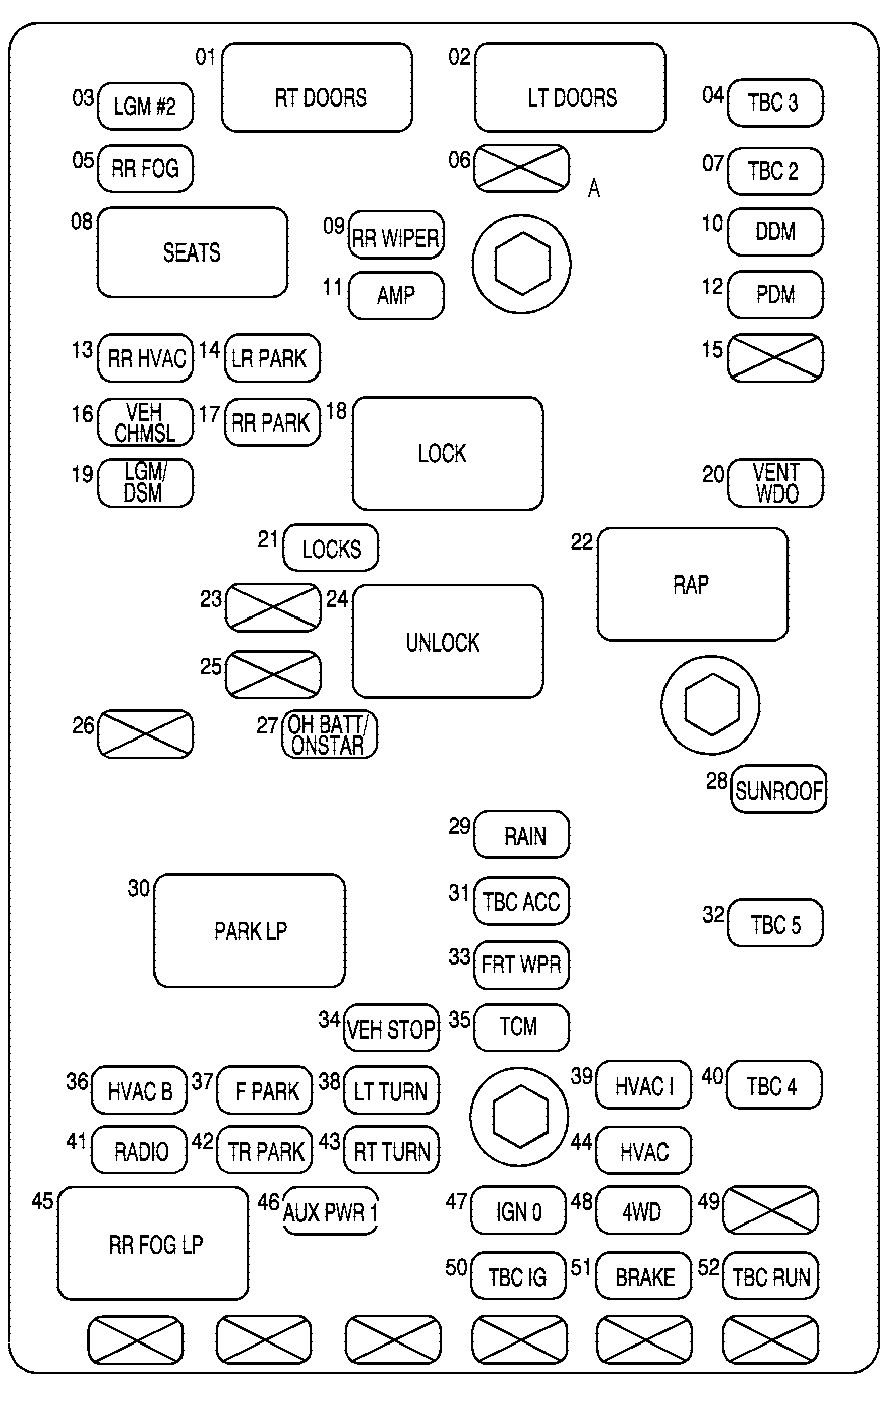 hight resolution of 2002 gmc envoy fuse diagram wiring diagram expert fuse box diagram for 2002 gmc envoy